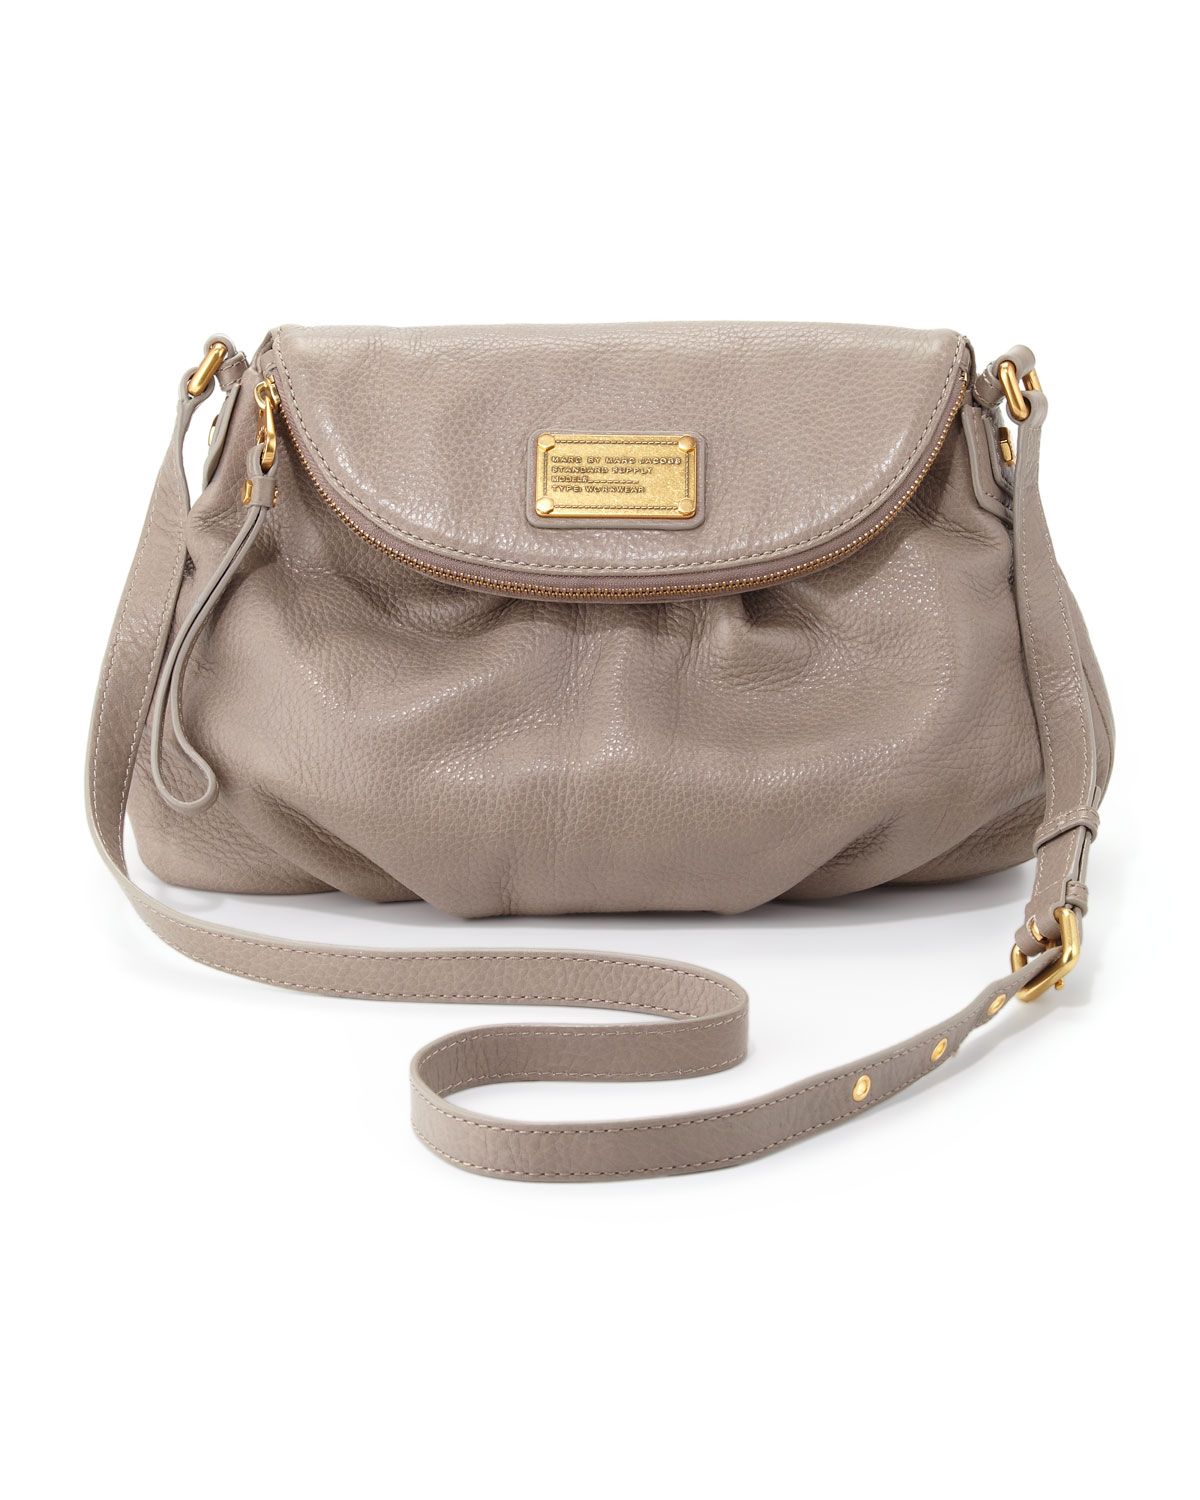 c26c70309bdb Lyst - Marc By Marc Jacobs Classic Q Natasha Crossbody Bag Taupe in ...